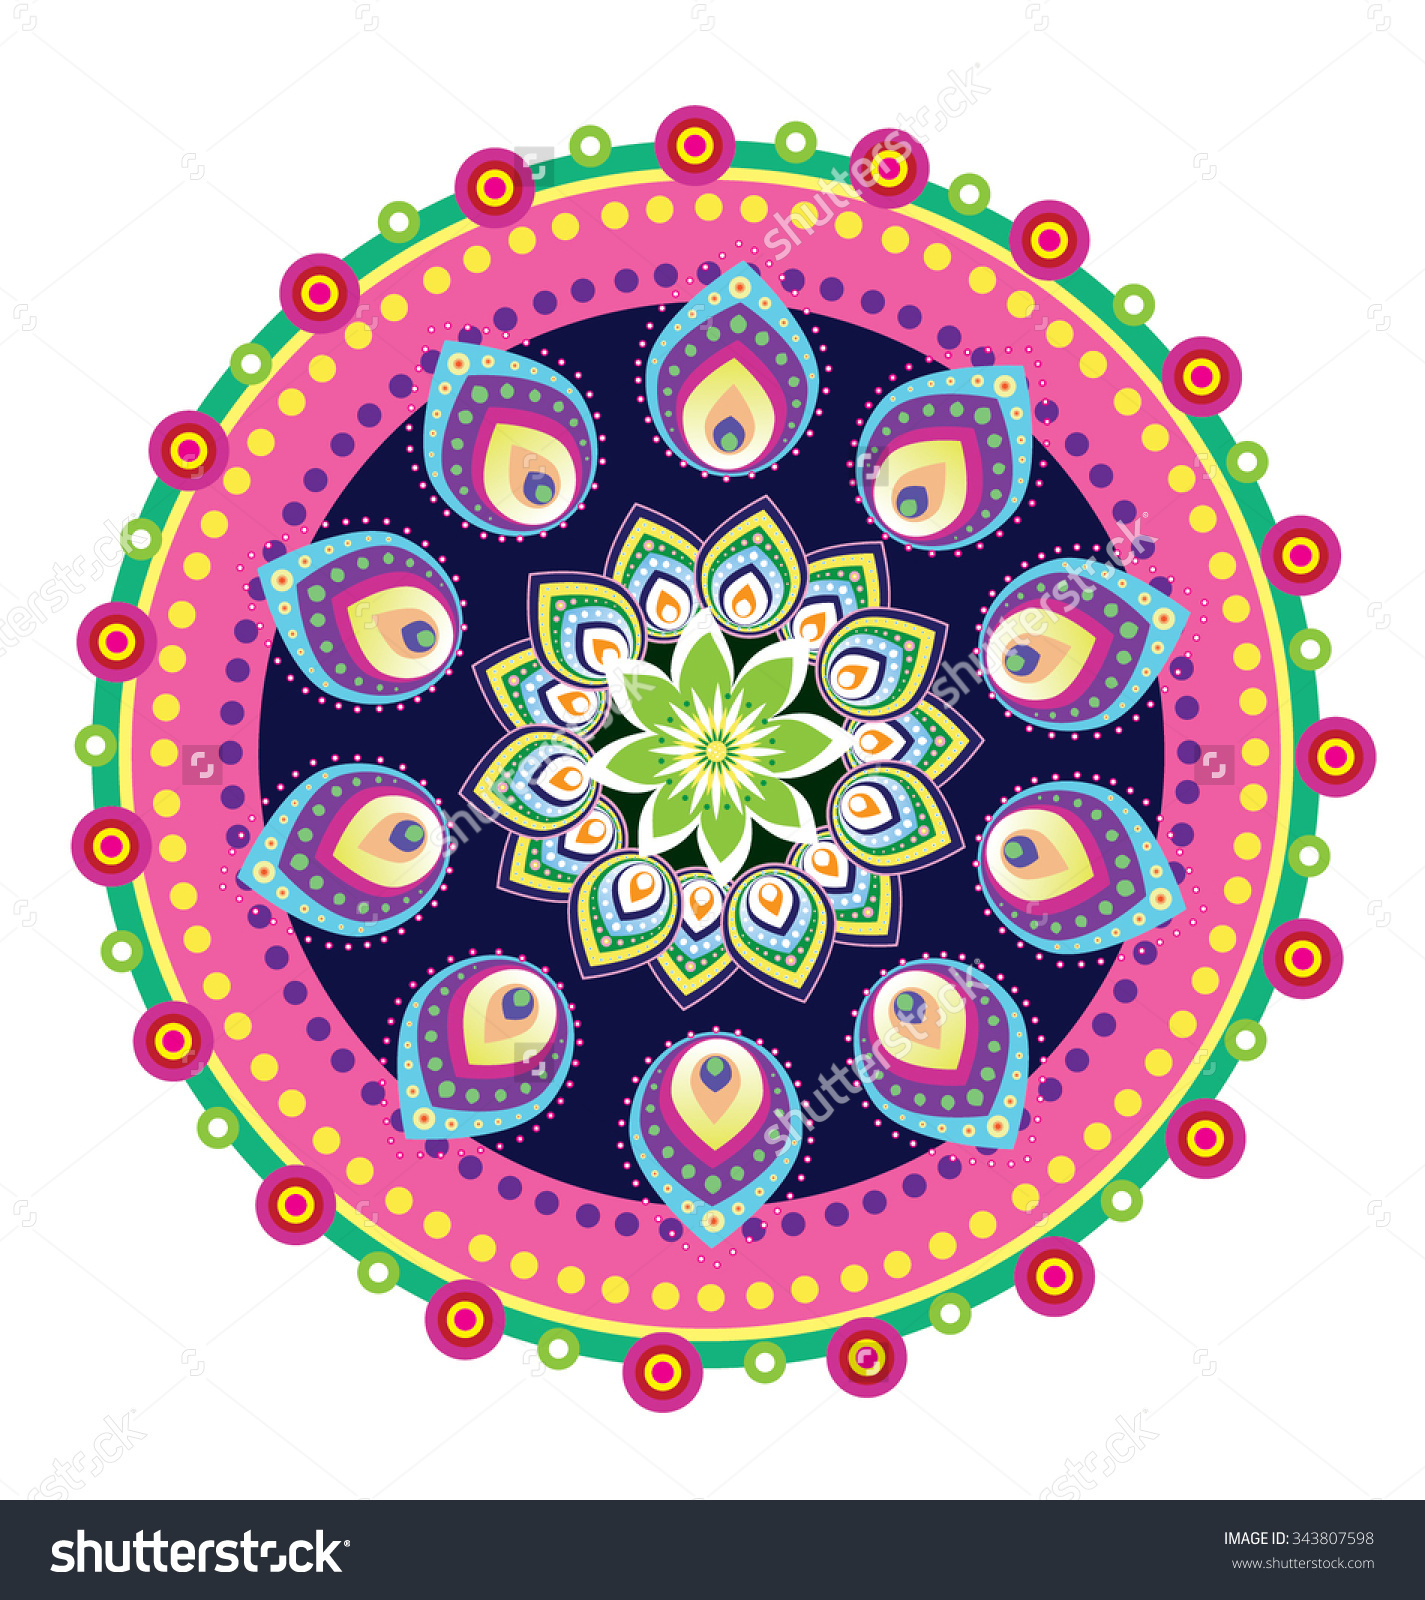 Mandala Flower Vector Stock Vector 343807598.